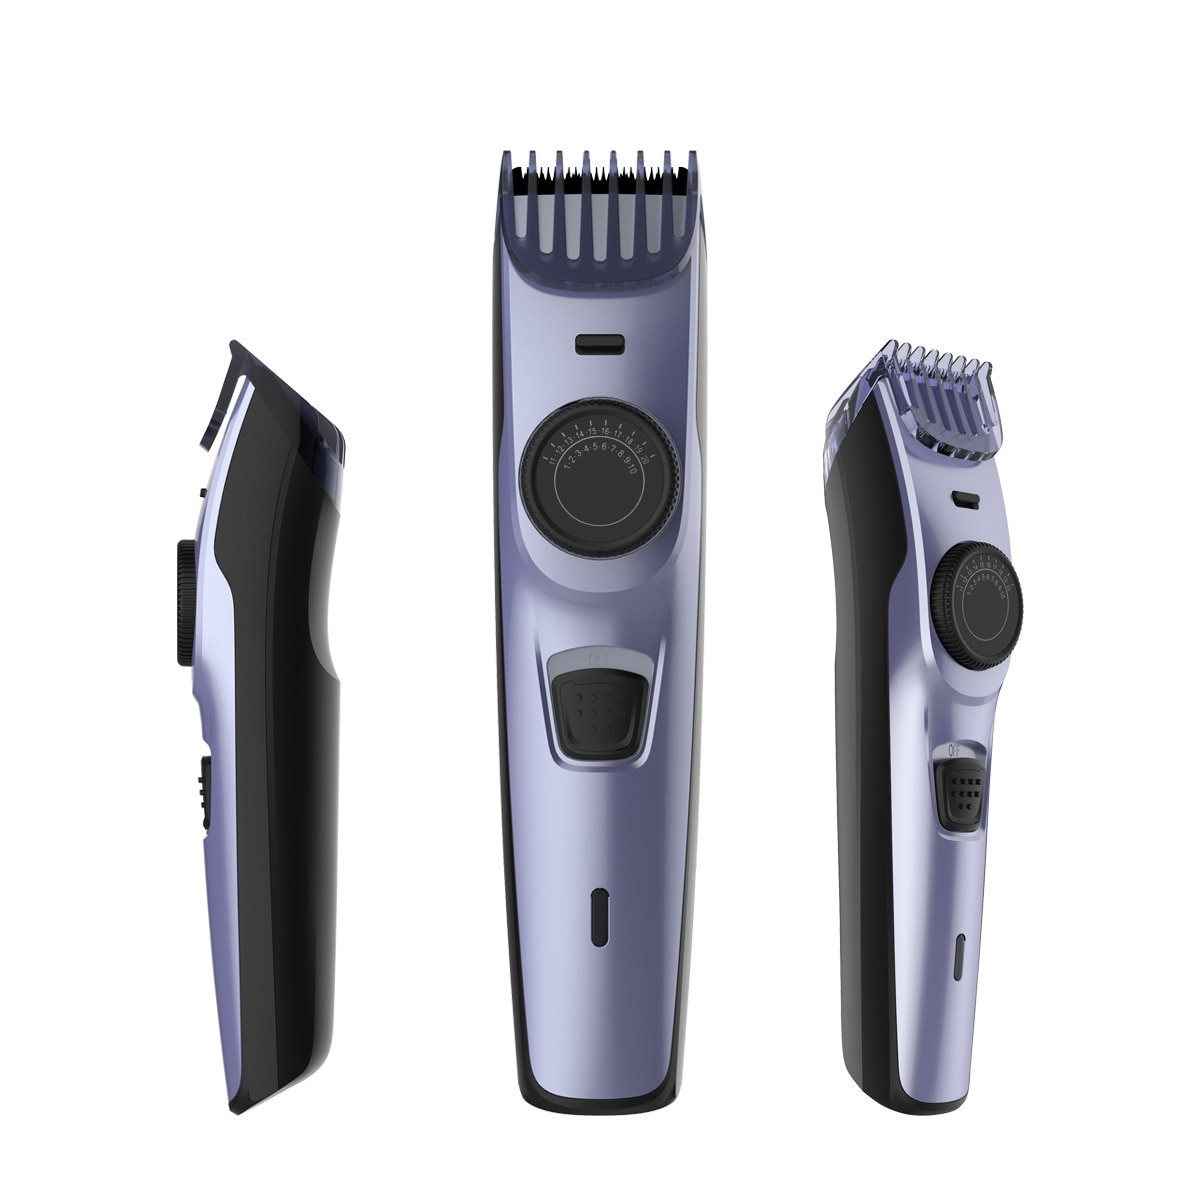 Professional Hair Trimmer Kit Wet Dry Hair Clipper Beard Trimer for Men Adjustable Hair Cutting Machine Lithium Ion enlarge